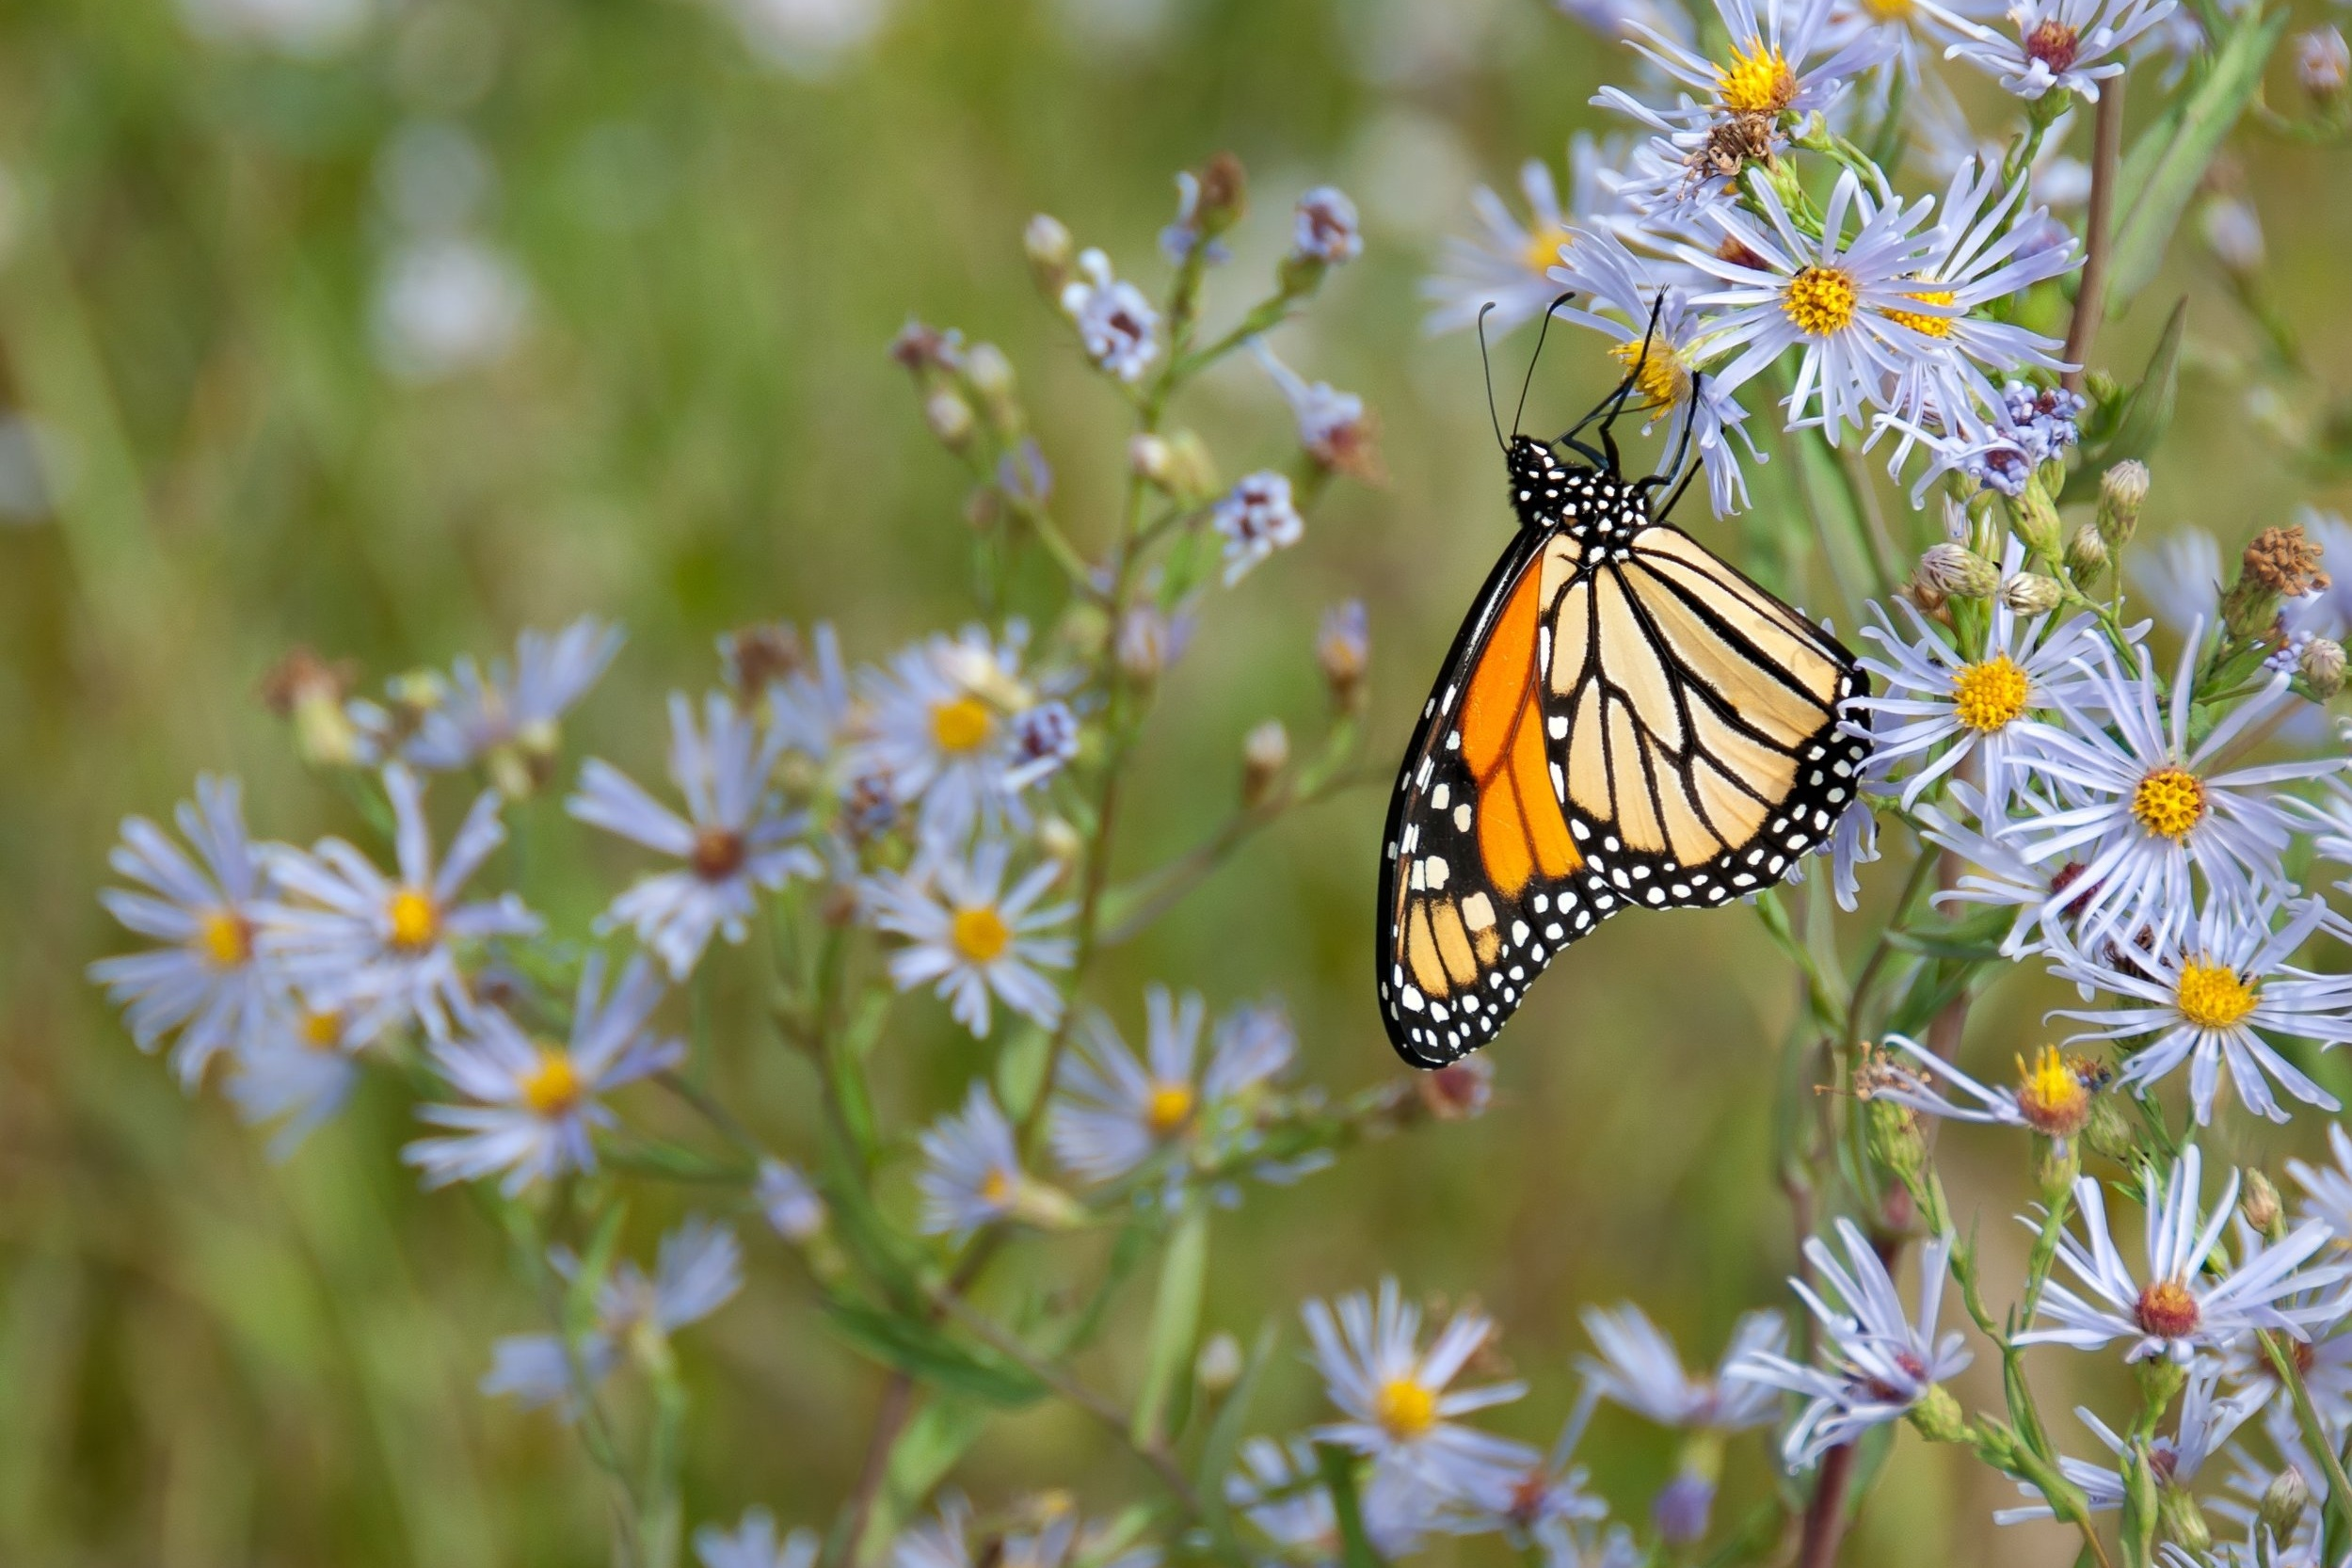 Monarch butterfly on aster flowers